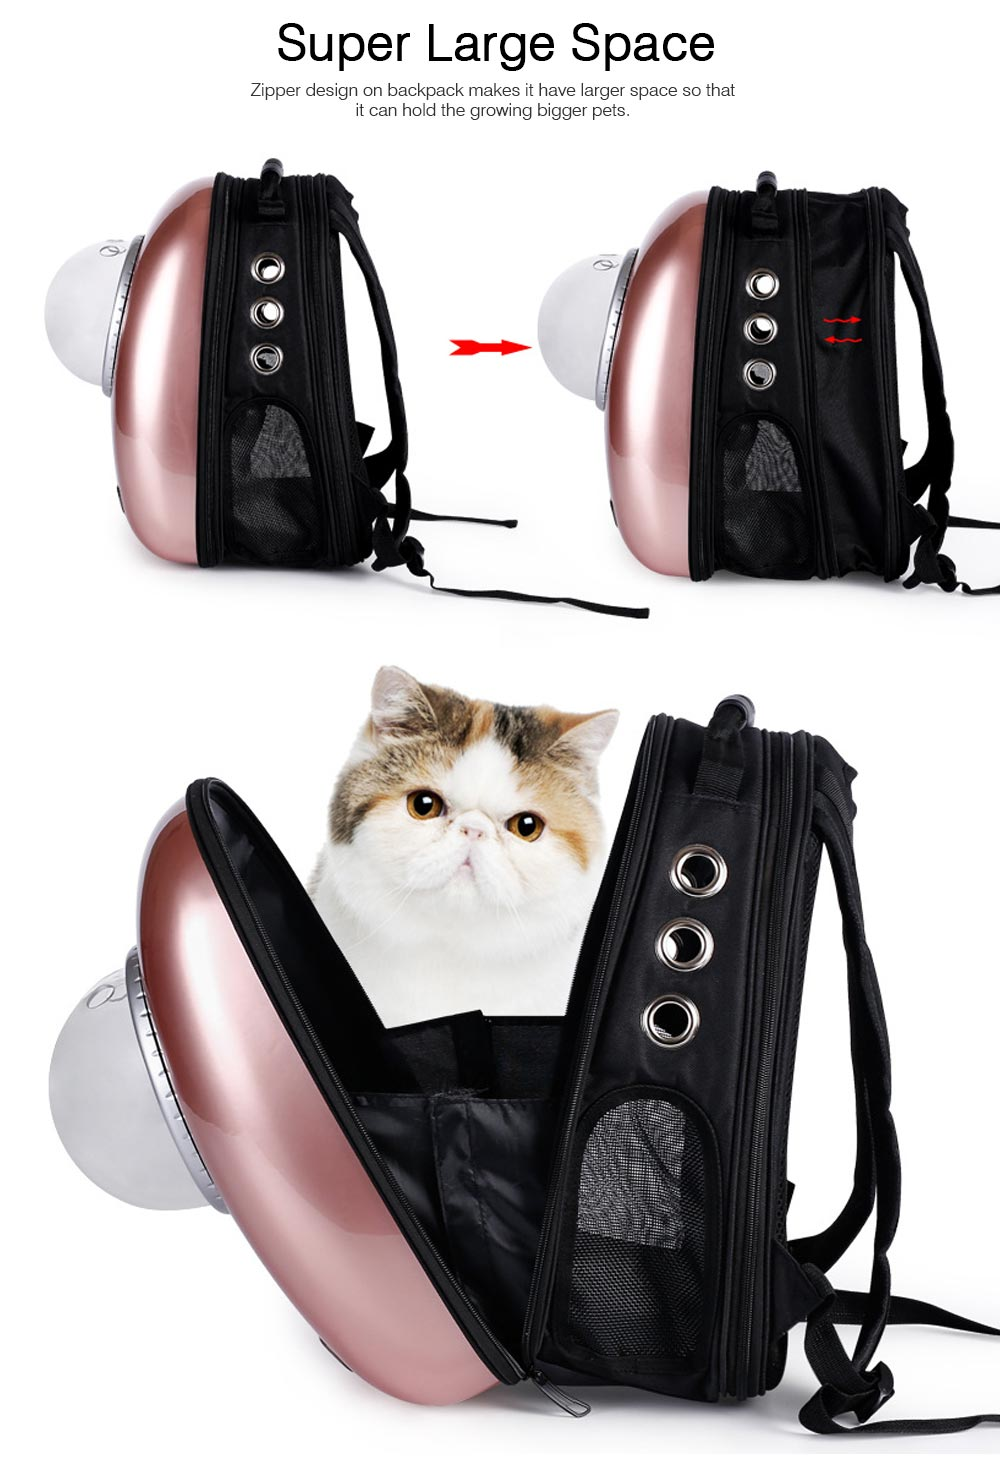 Fashionable Large Pet Backpack for Moderate and Small Size Dog and Cat, Portable Travel Pet Carrier Space Capsule Bubble Design 9